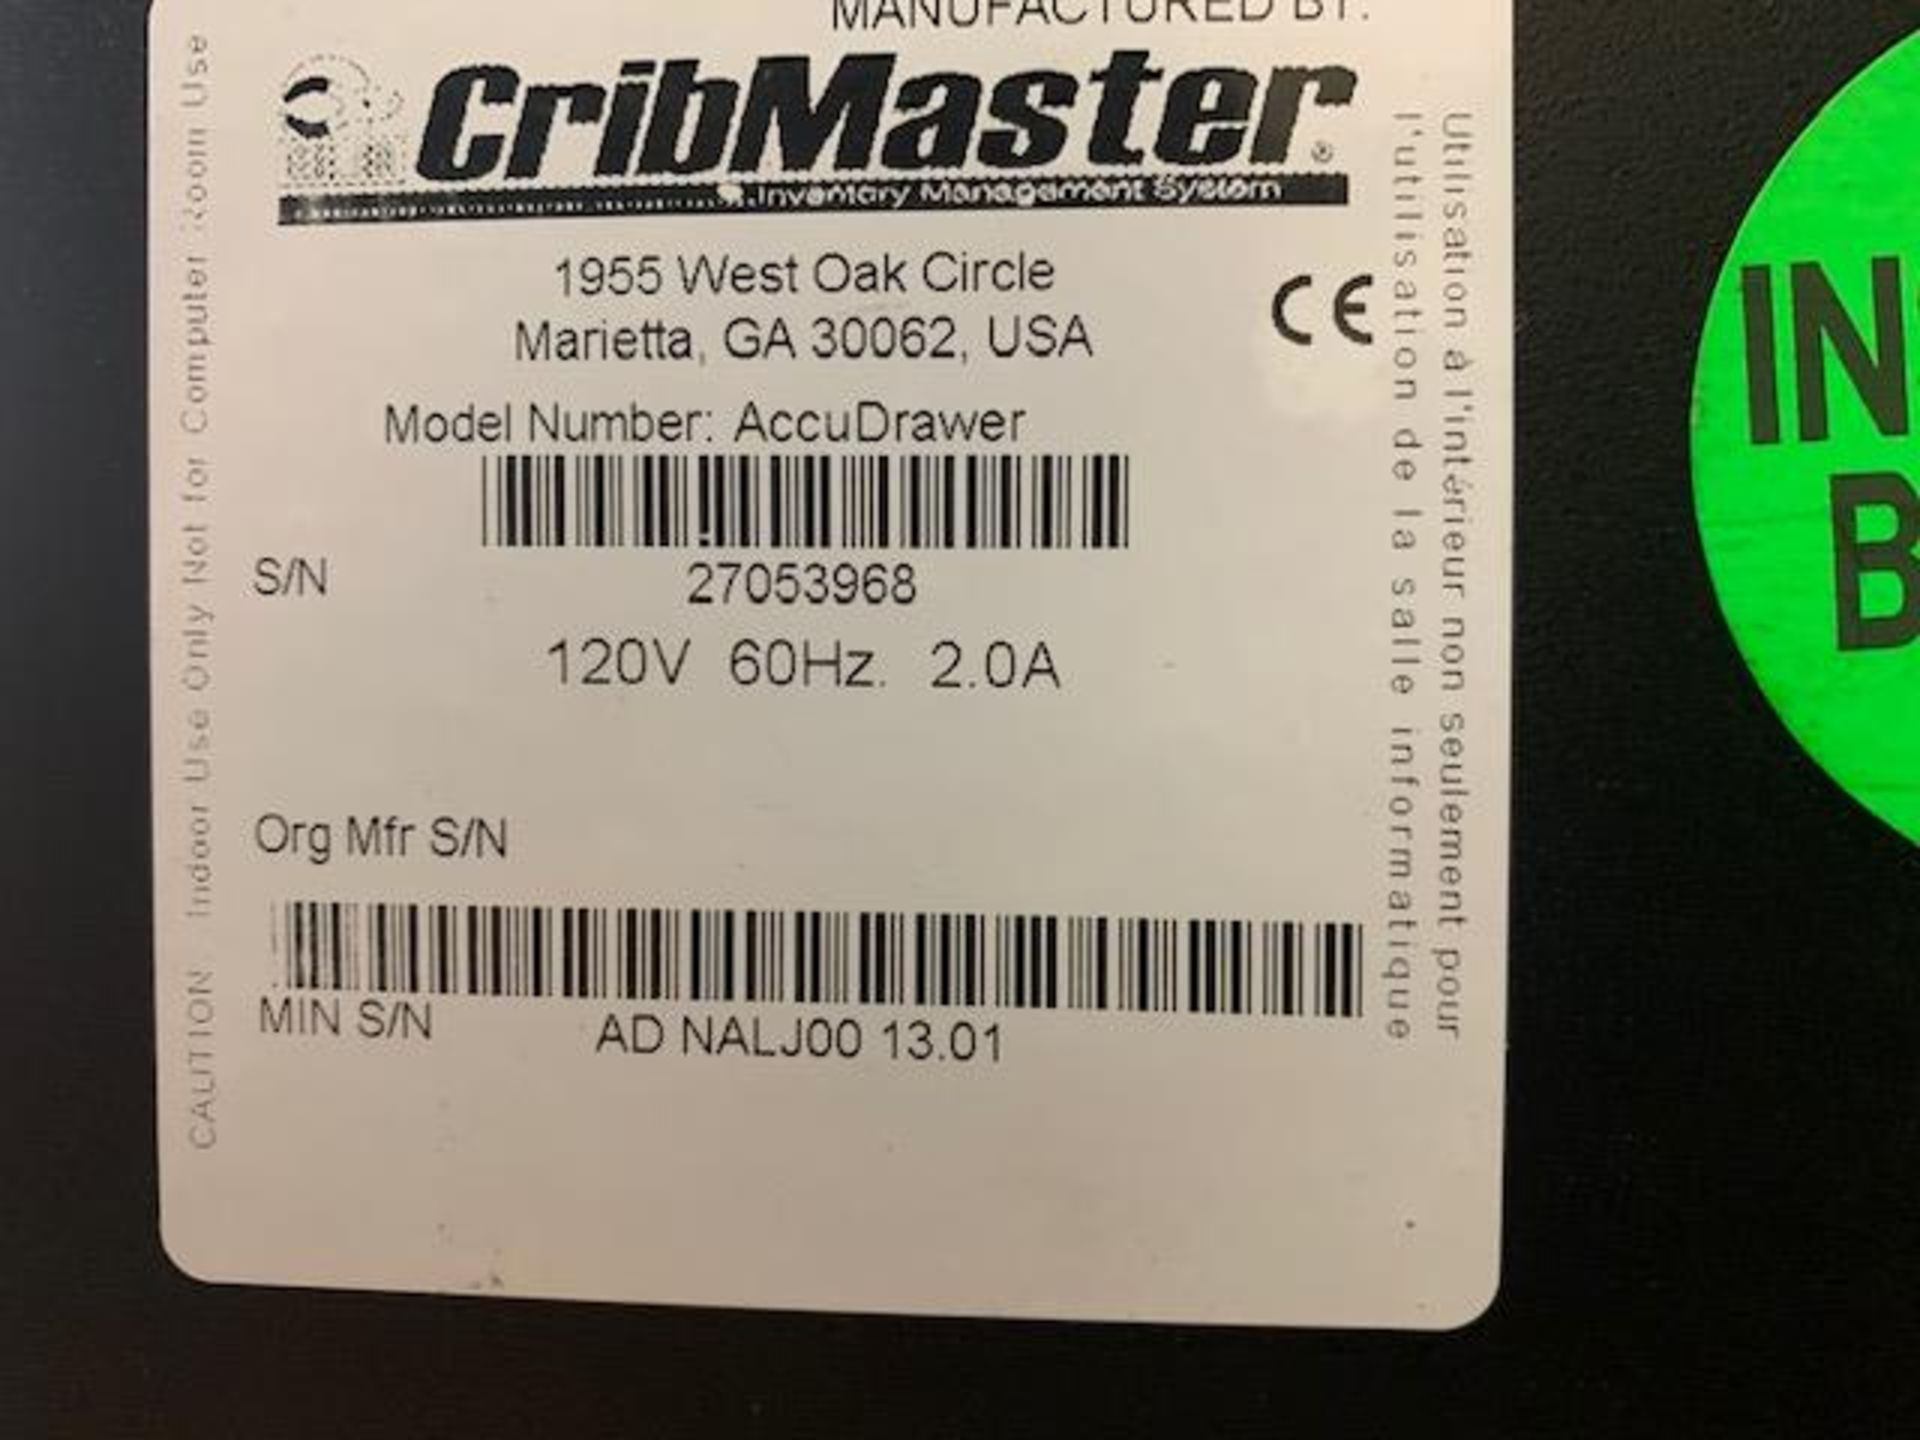 Cribmaster AccuDrawer - Image 2 of 8